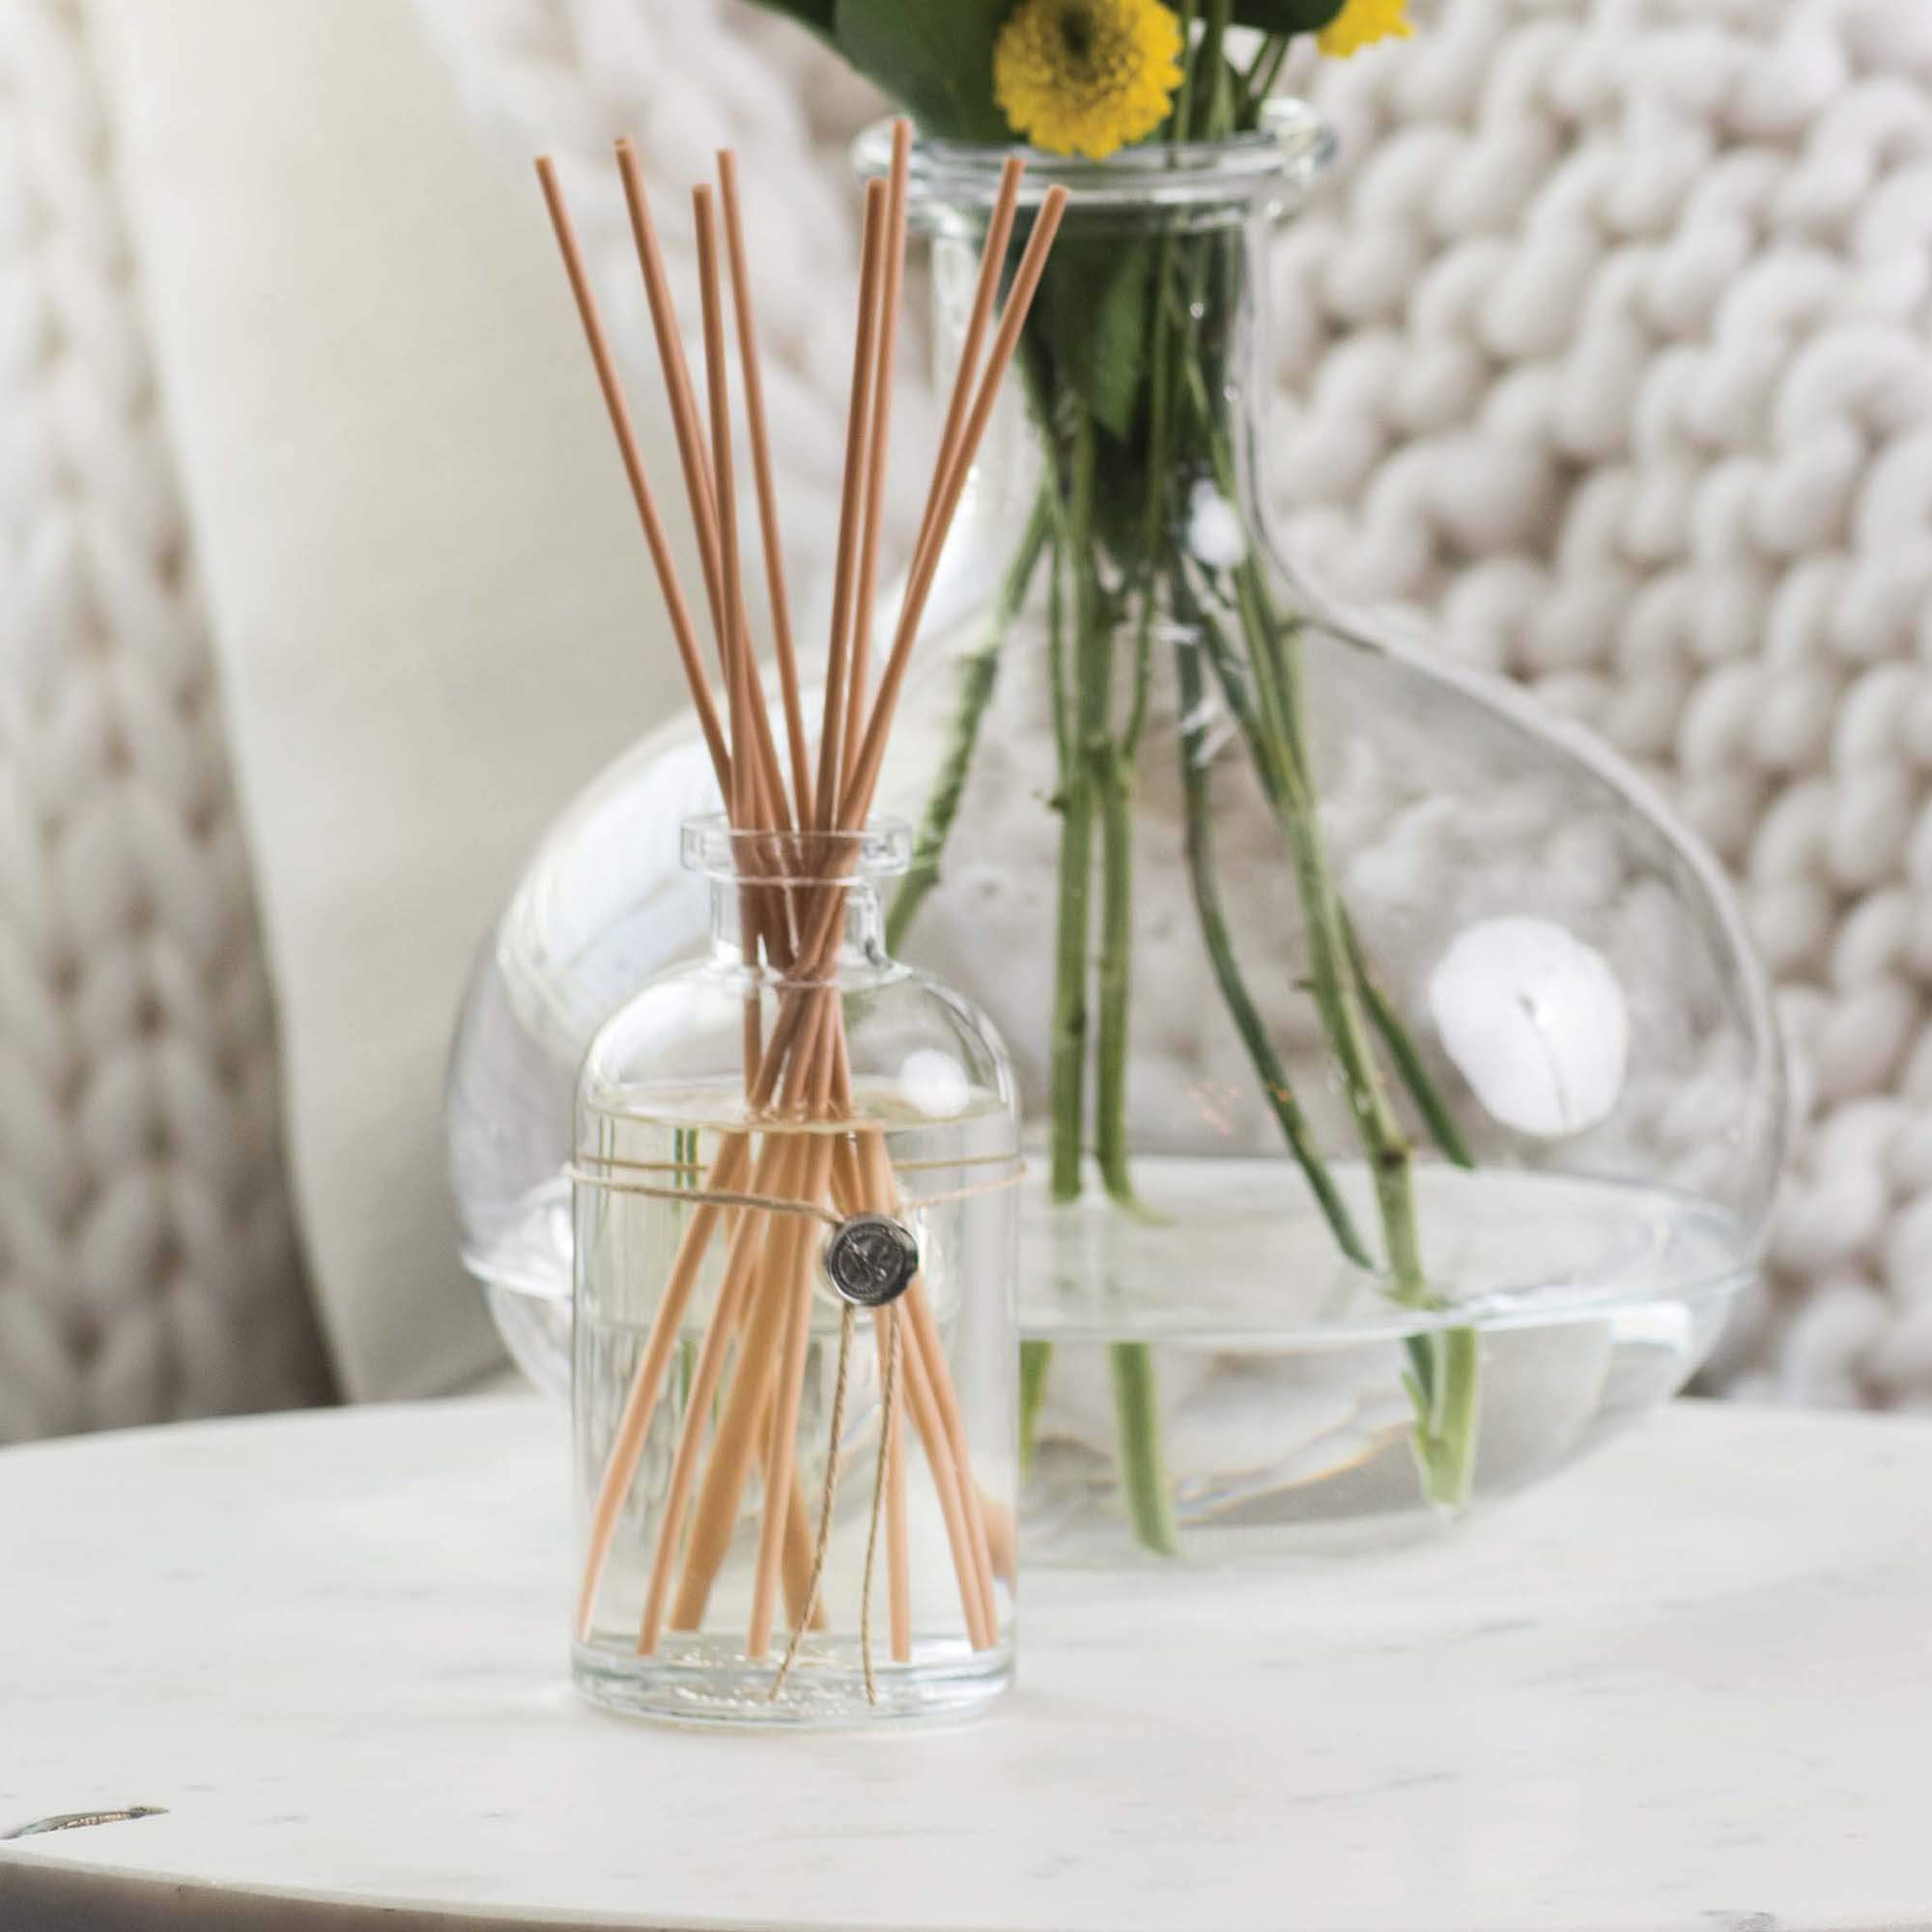 Votivo Aromatic Reed Diffuser - Red Currant by Votivo (Image #6)